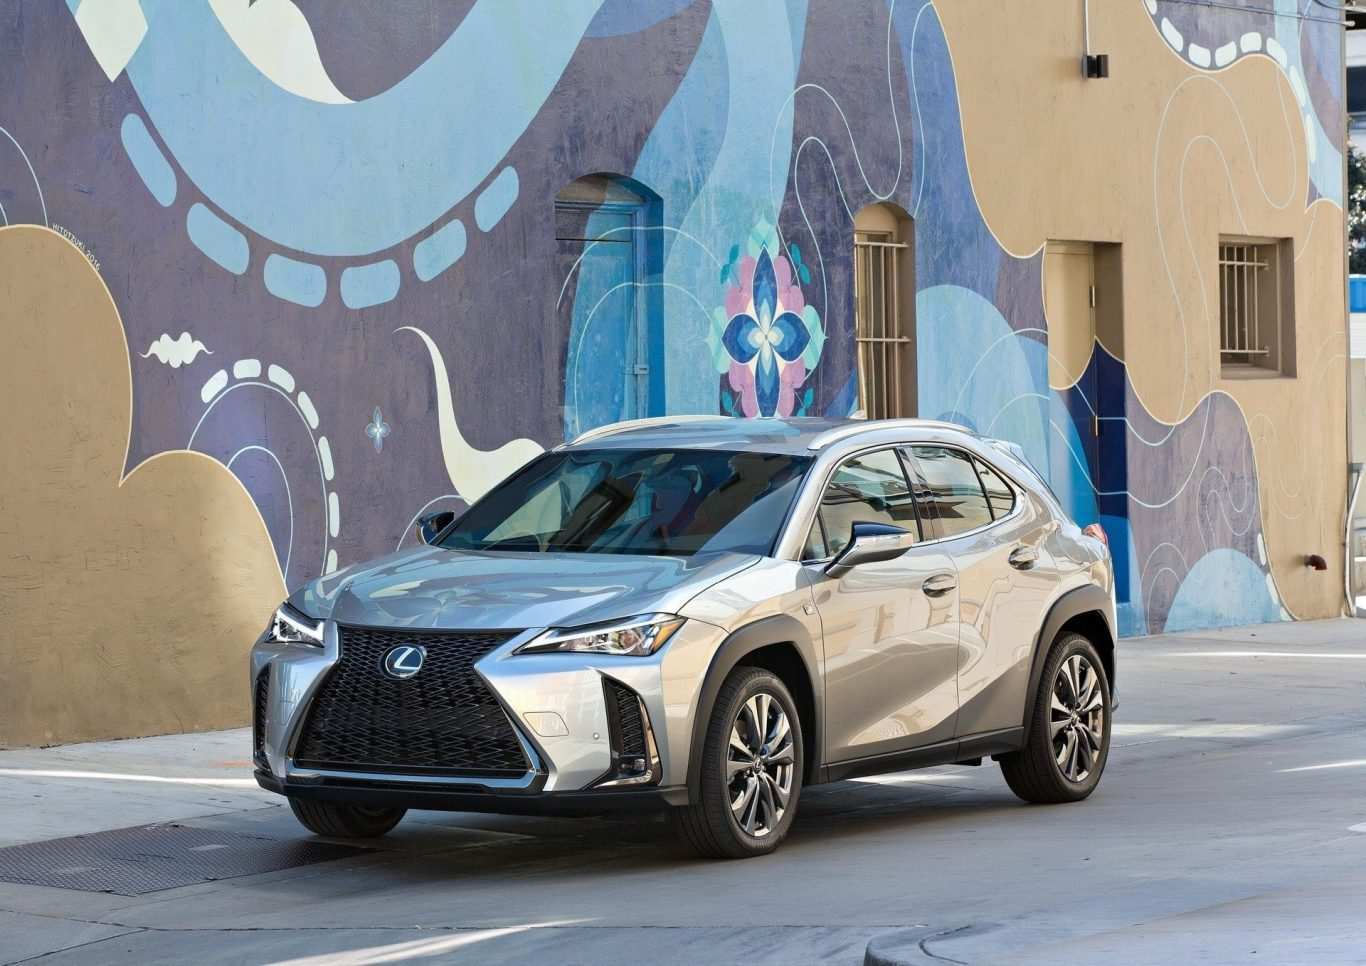 36 Gallery of Lexus Nx 2020 Review History for Lexus Nx 2020 Review